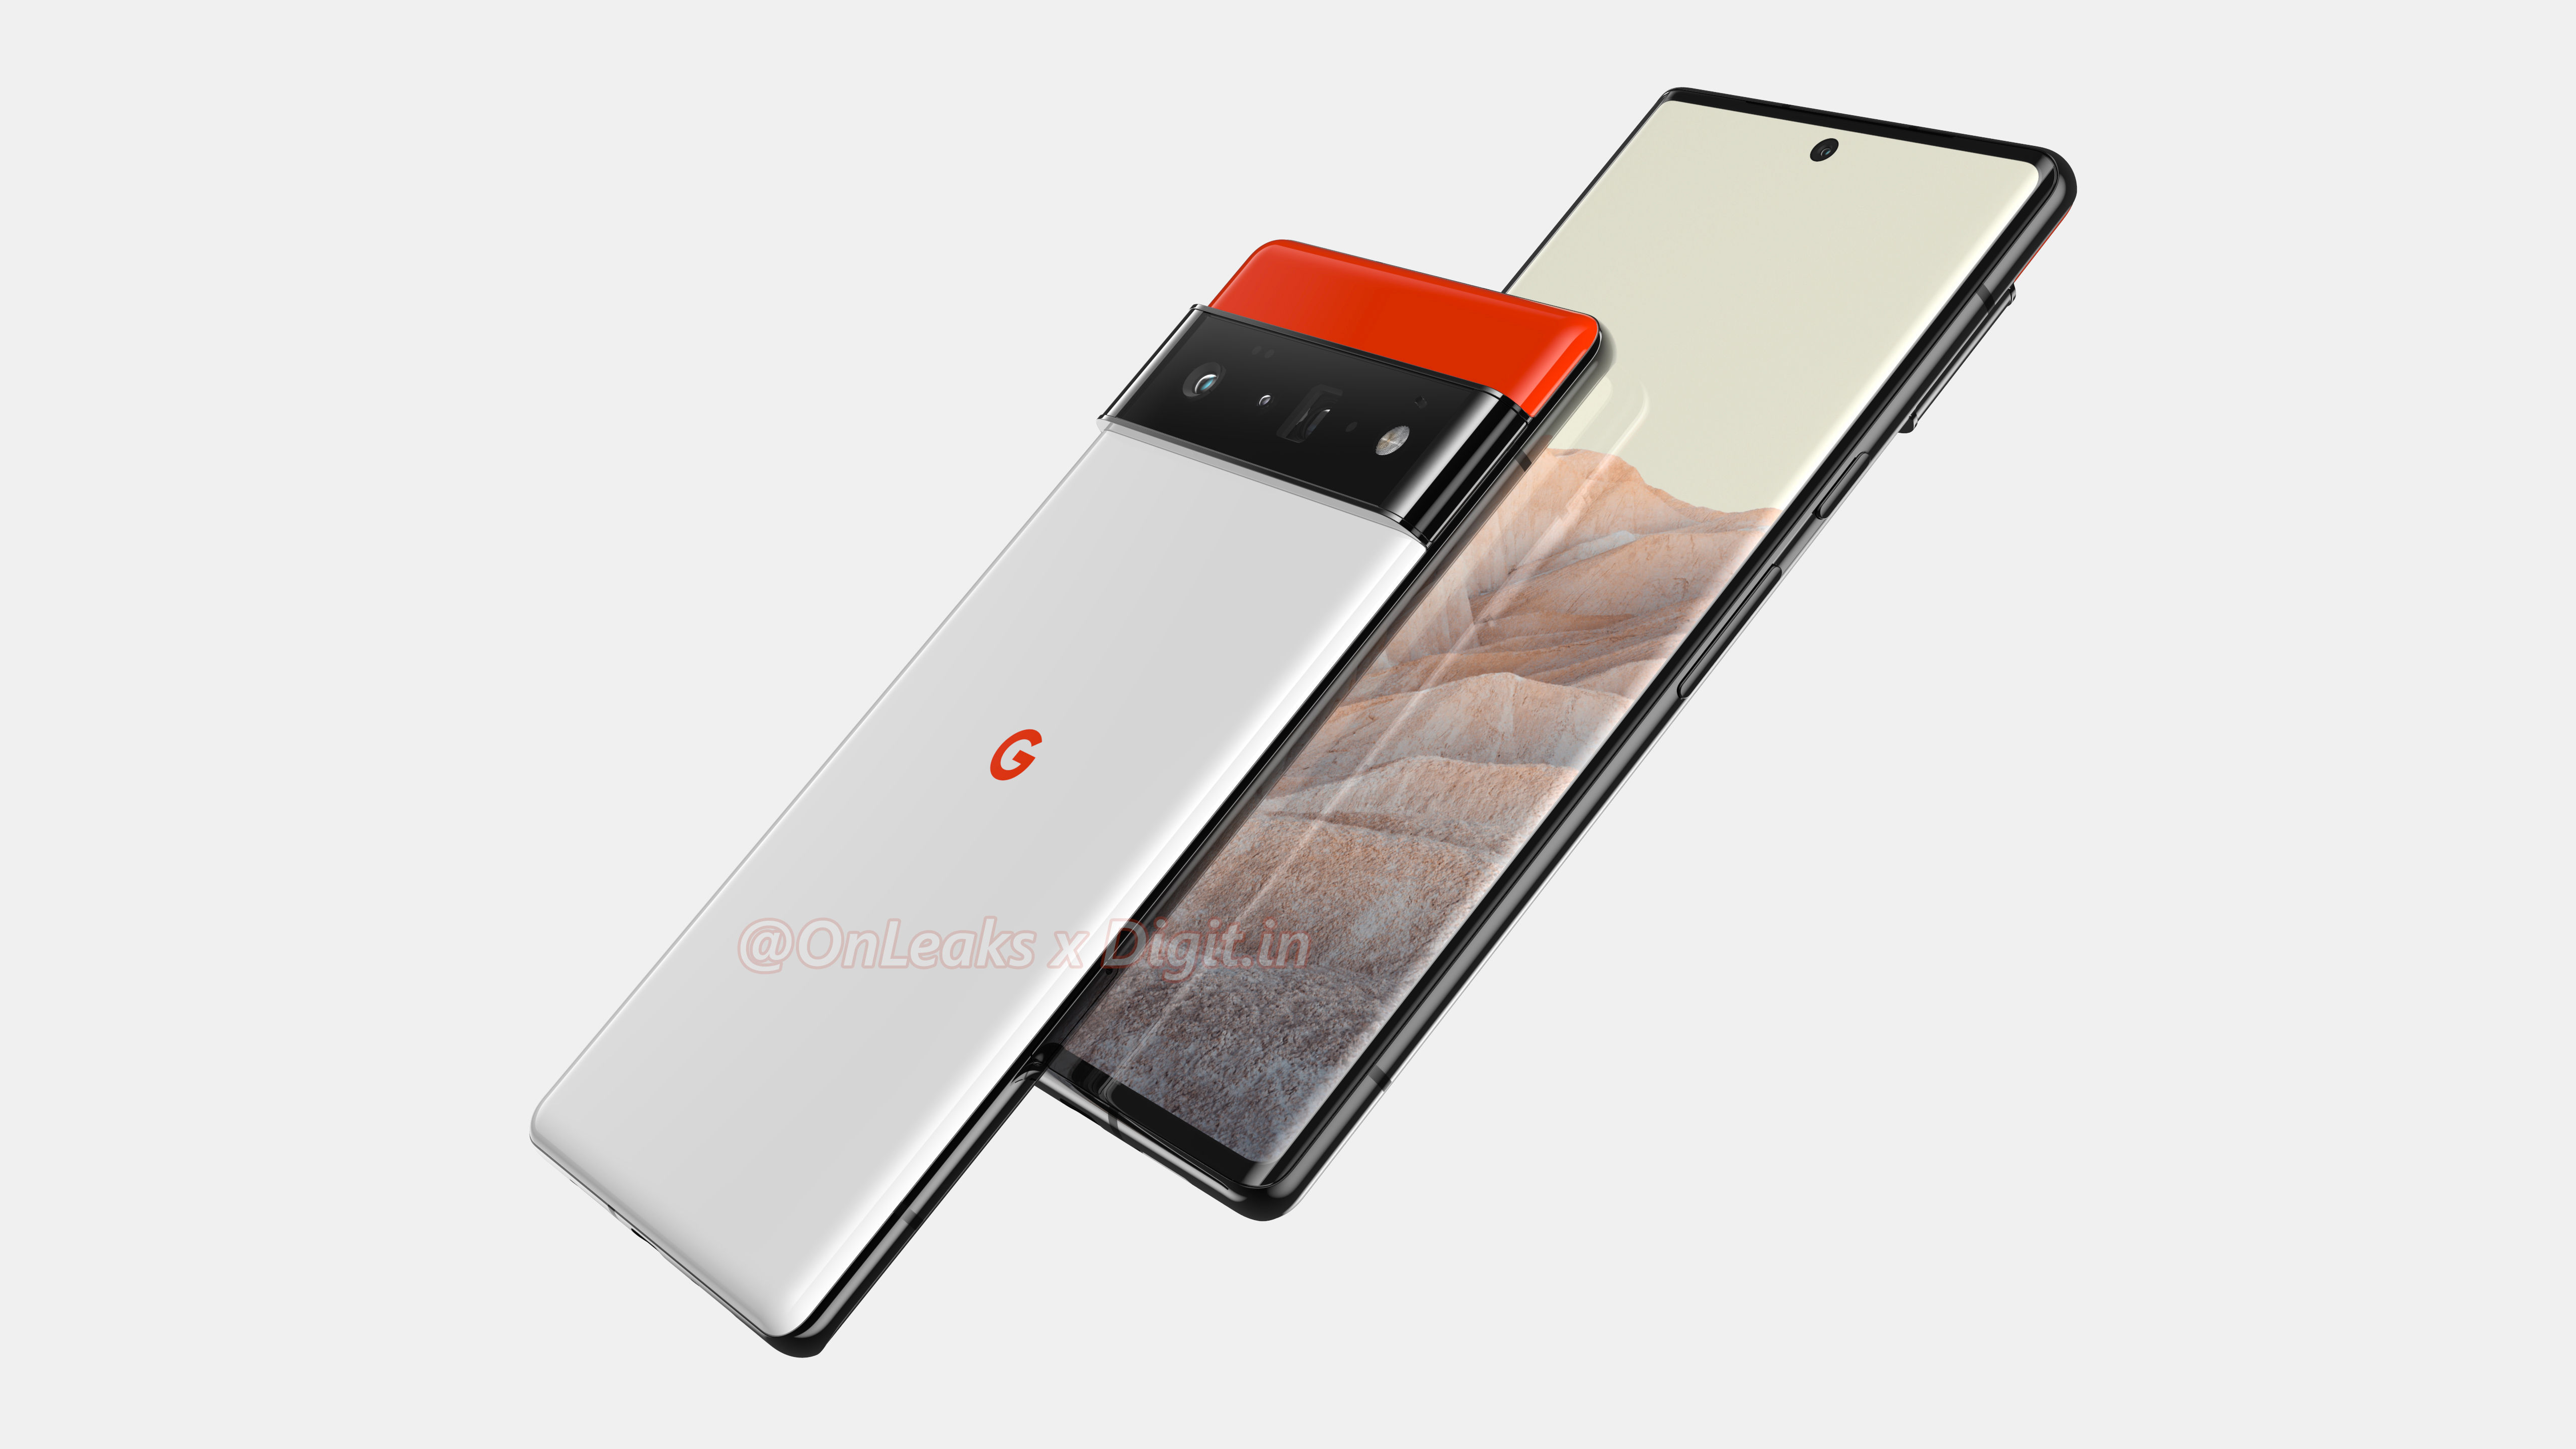 Front and back looks at the Google Pixel 6